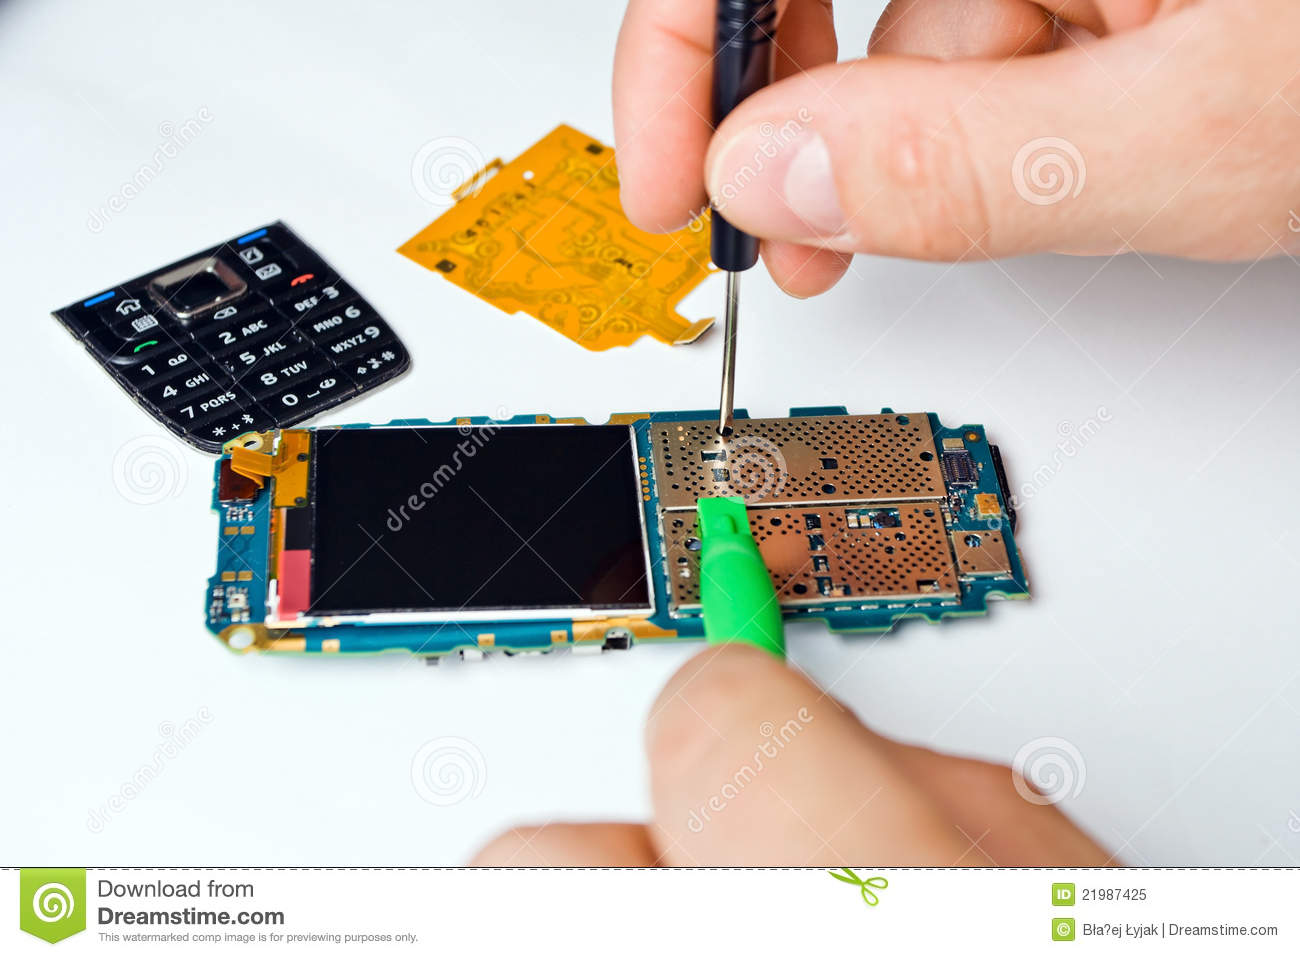 How to Start a Cell Phone Repair Business